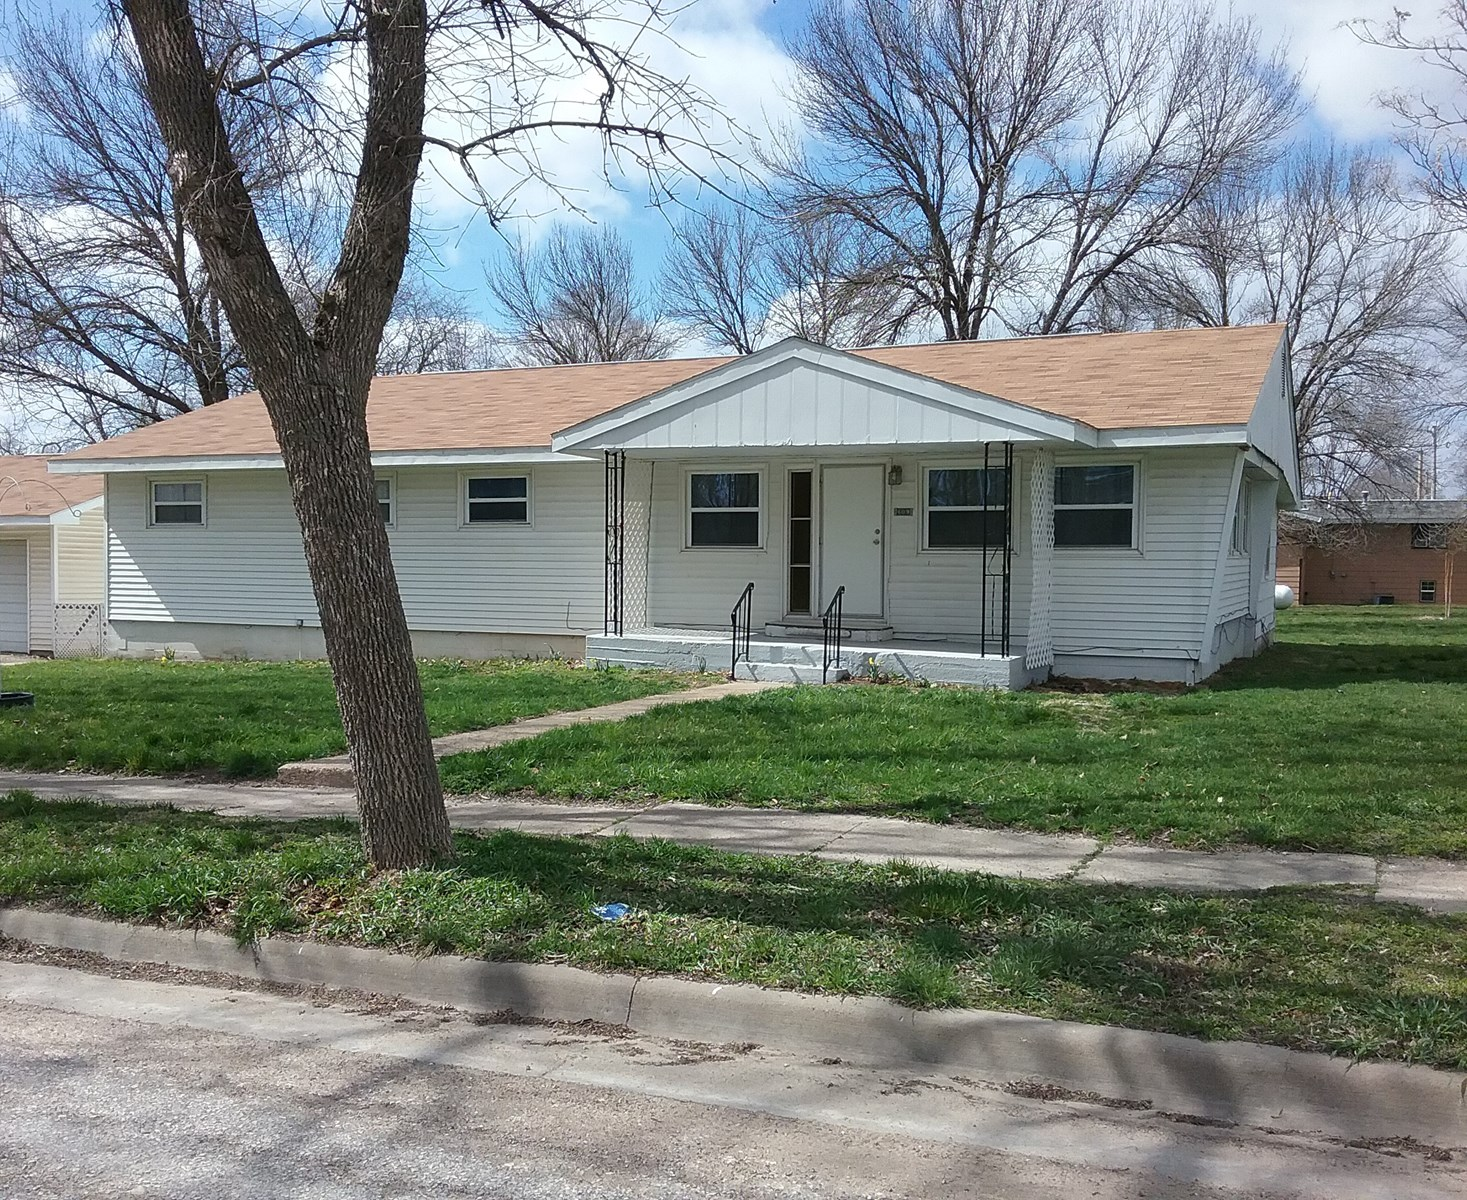 Home for Sale in Farmington, IA